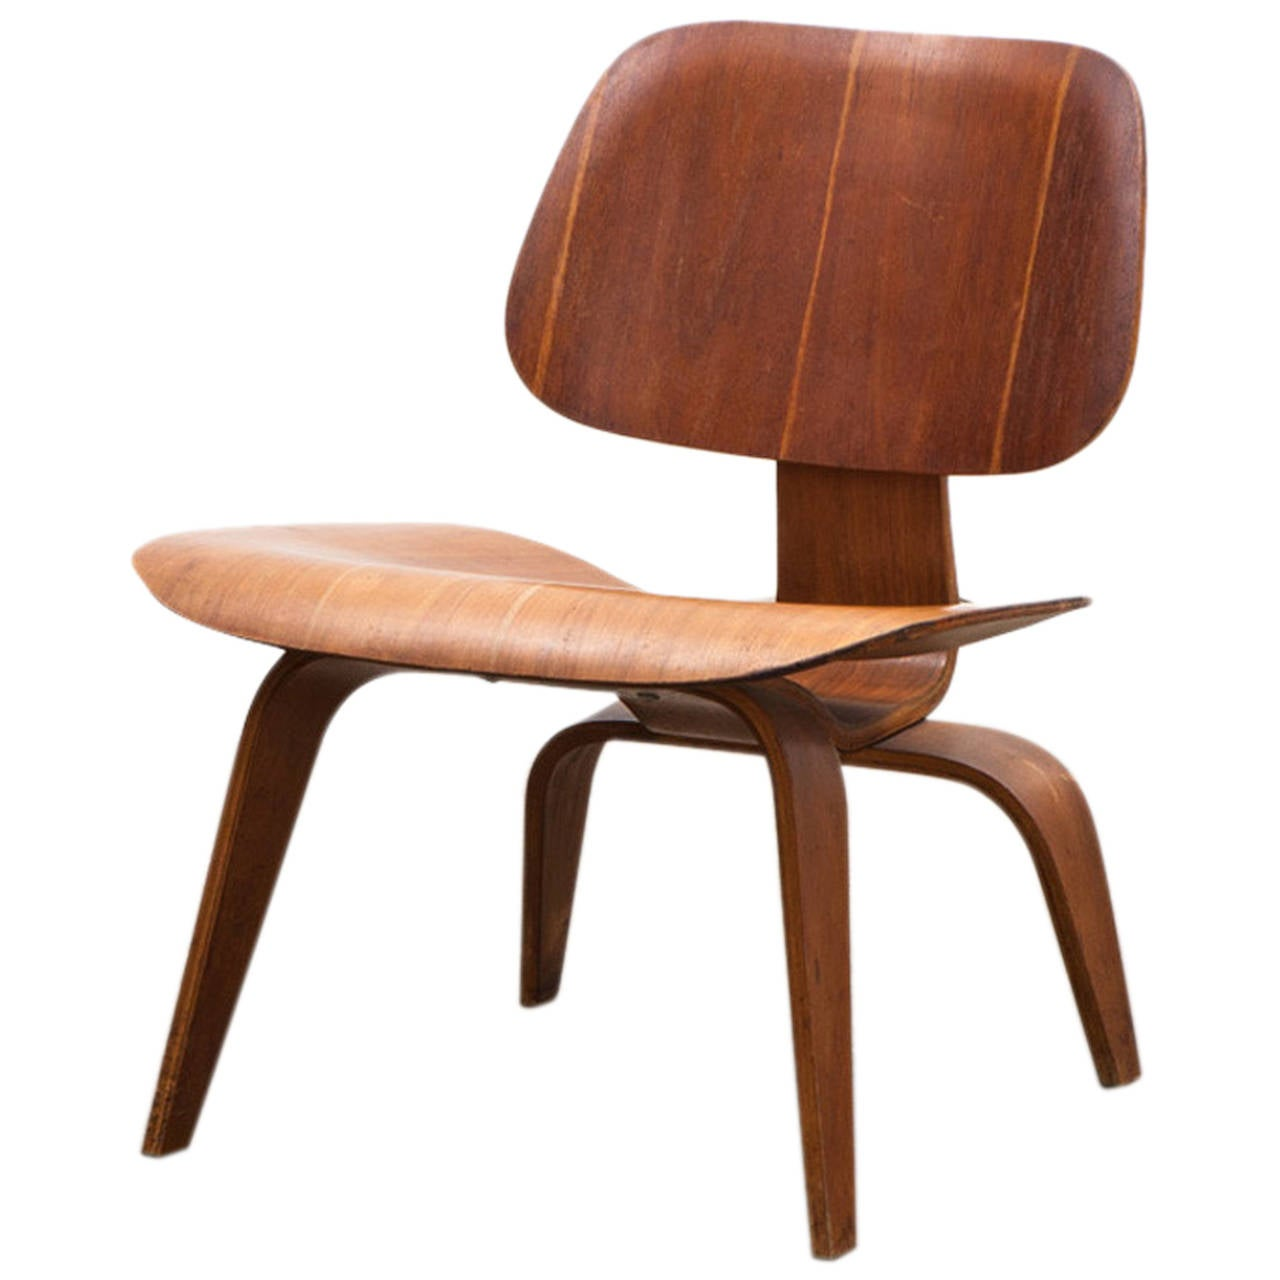 charles and ray eames lcw chair dark at 1stdibs. Black Bedroom Furniture Sets. Home Design Ideas